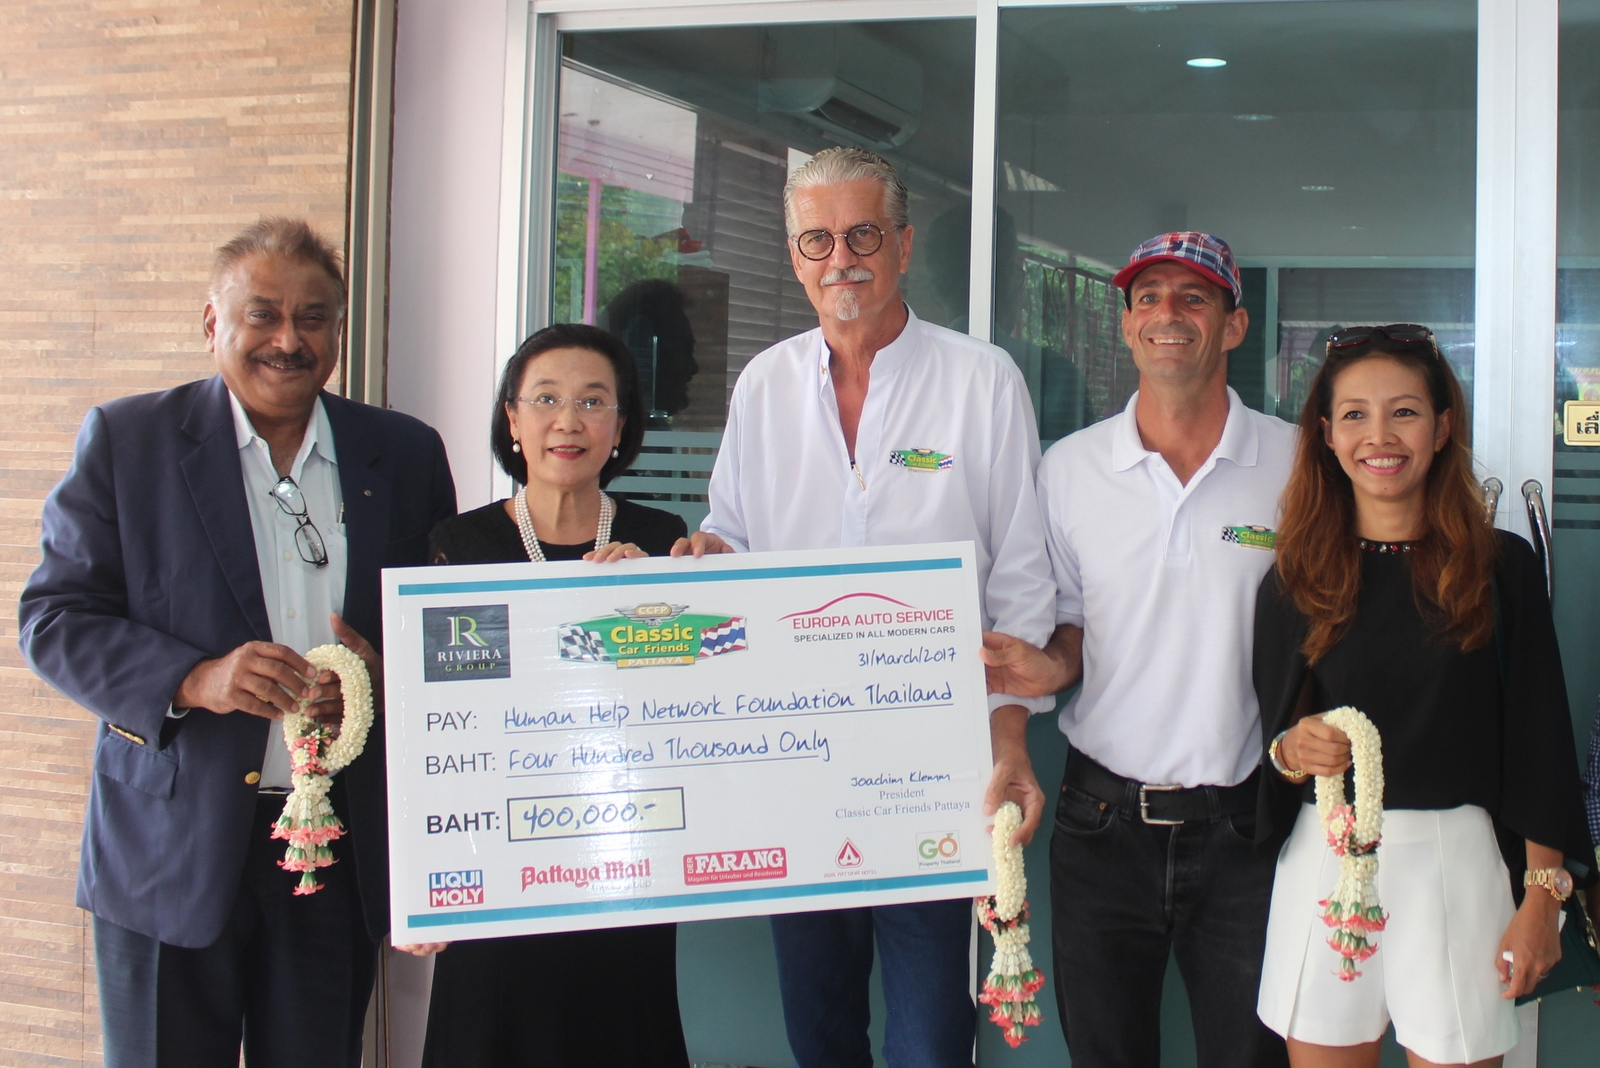 (l-r) Pratheep Malhotra media sponsor, Jo Klemm, Martin and Achara Koller hand over a check for 400,000 baht to Ratchada Chomjinda the Director of the Human Help Network Foundation.